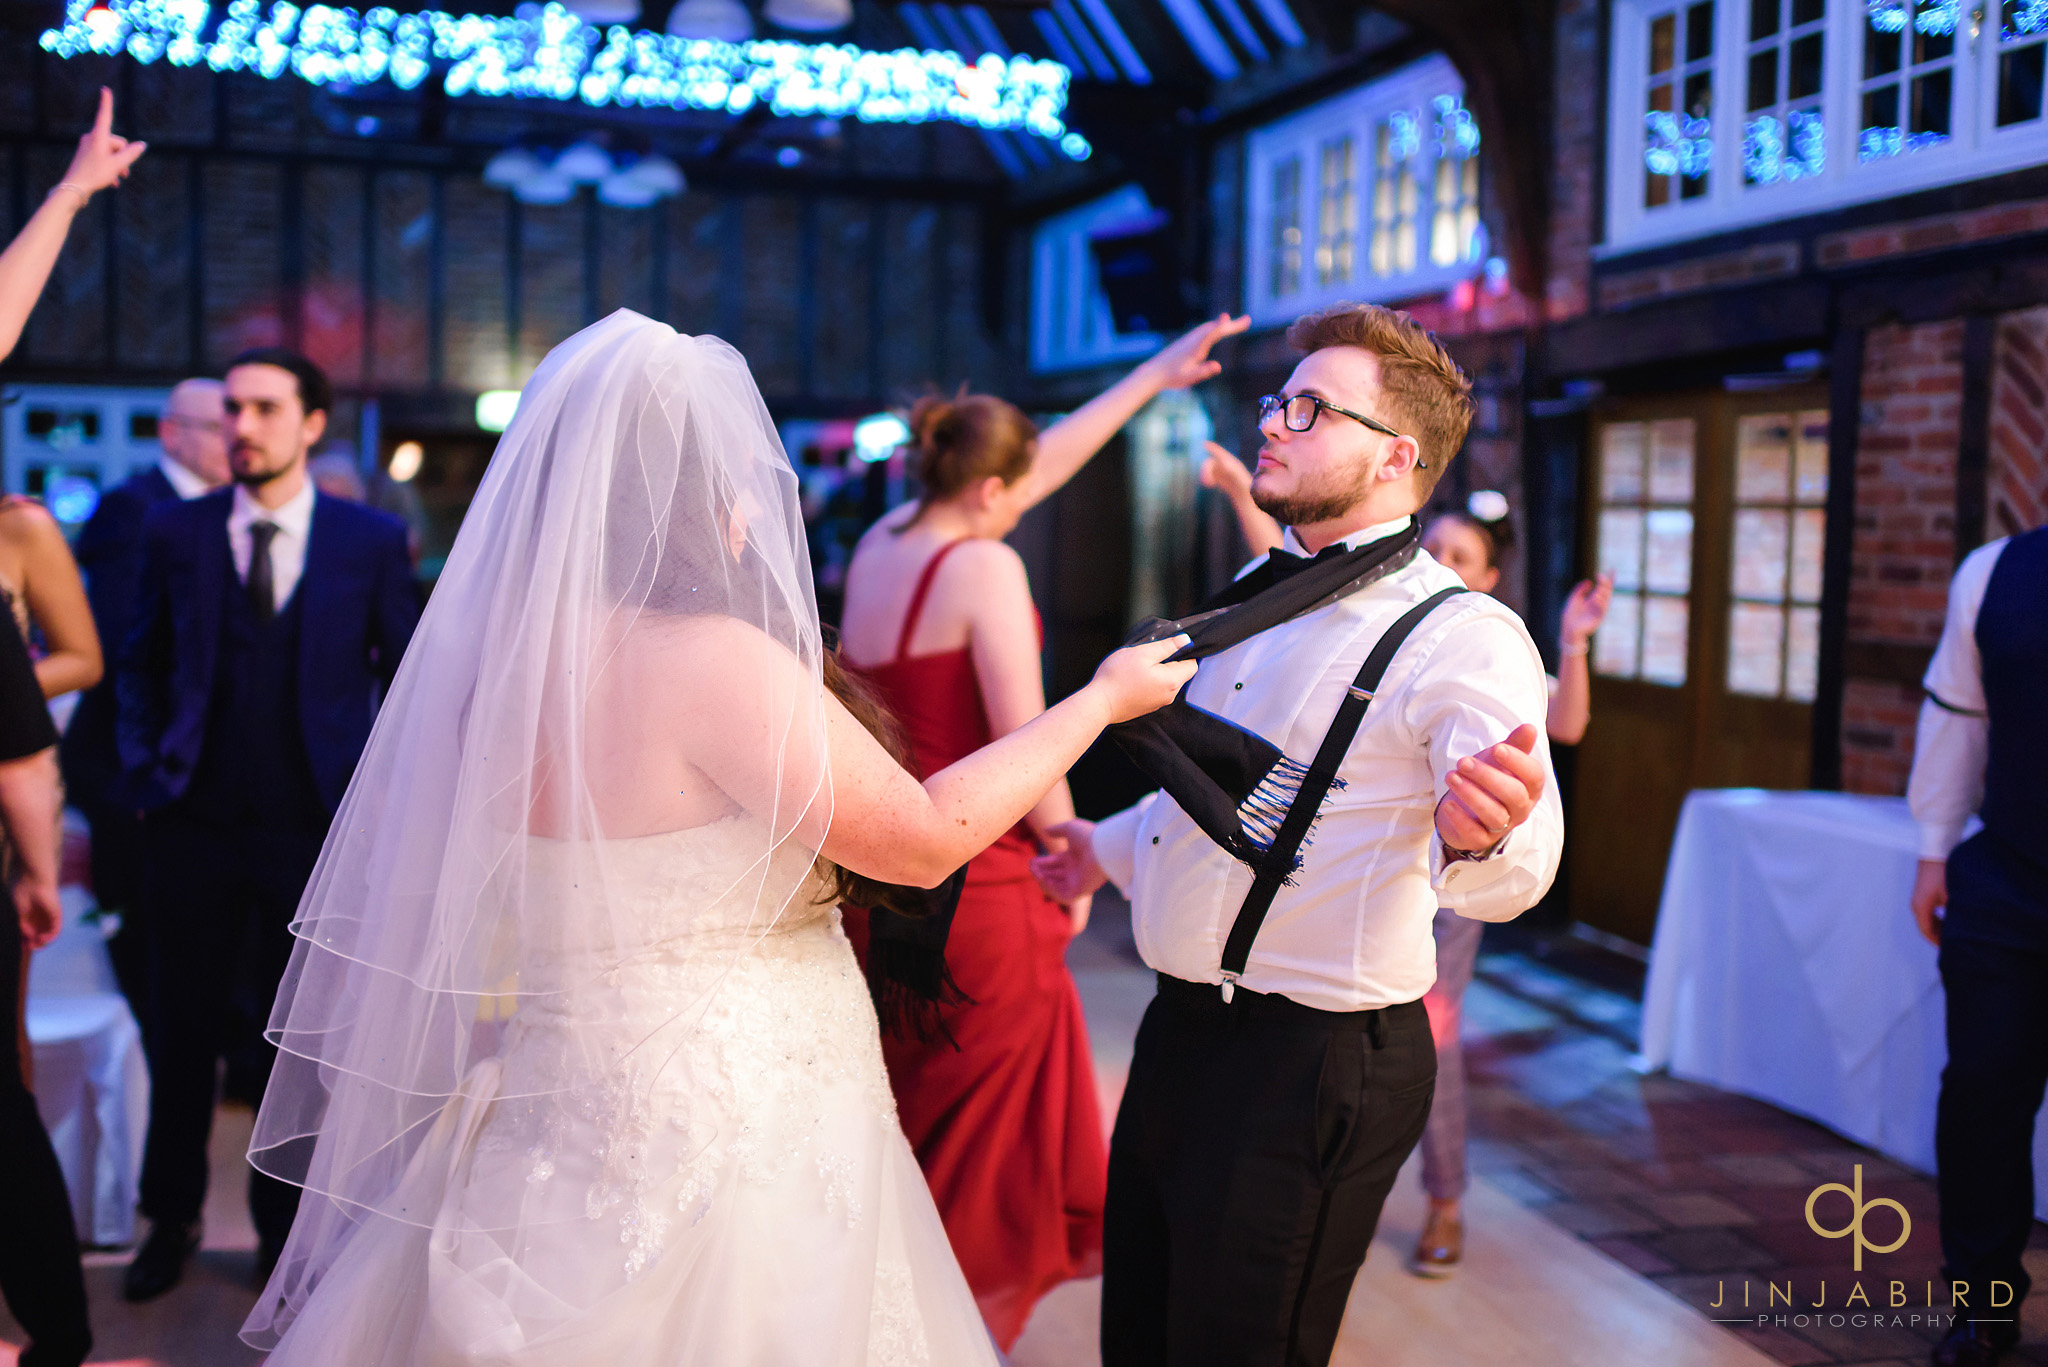 bride pulling grooms tie on dance floor